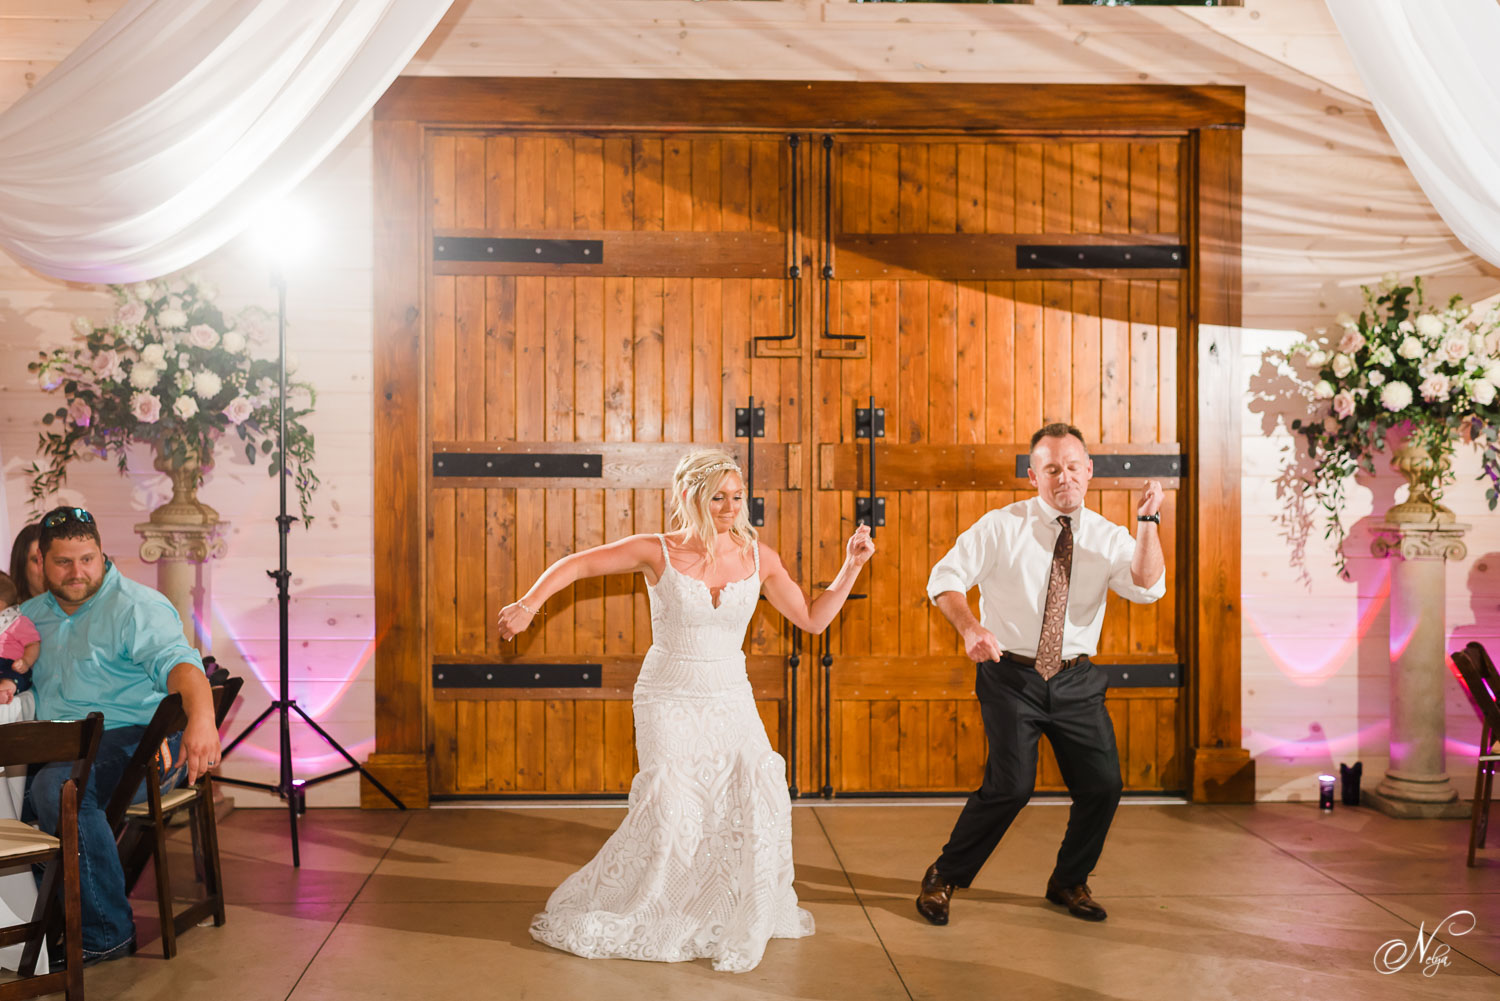 bride and her dad dancing to a mix by DJT3 of chattanooga TN